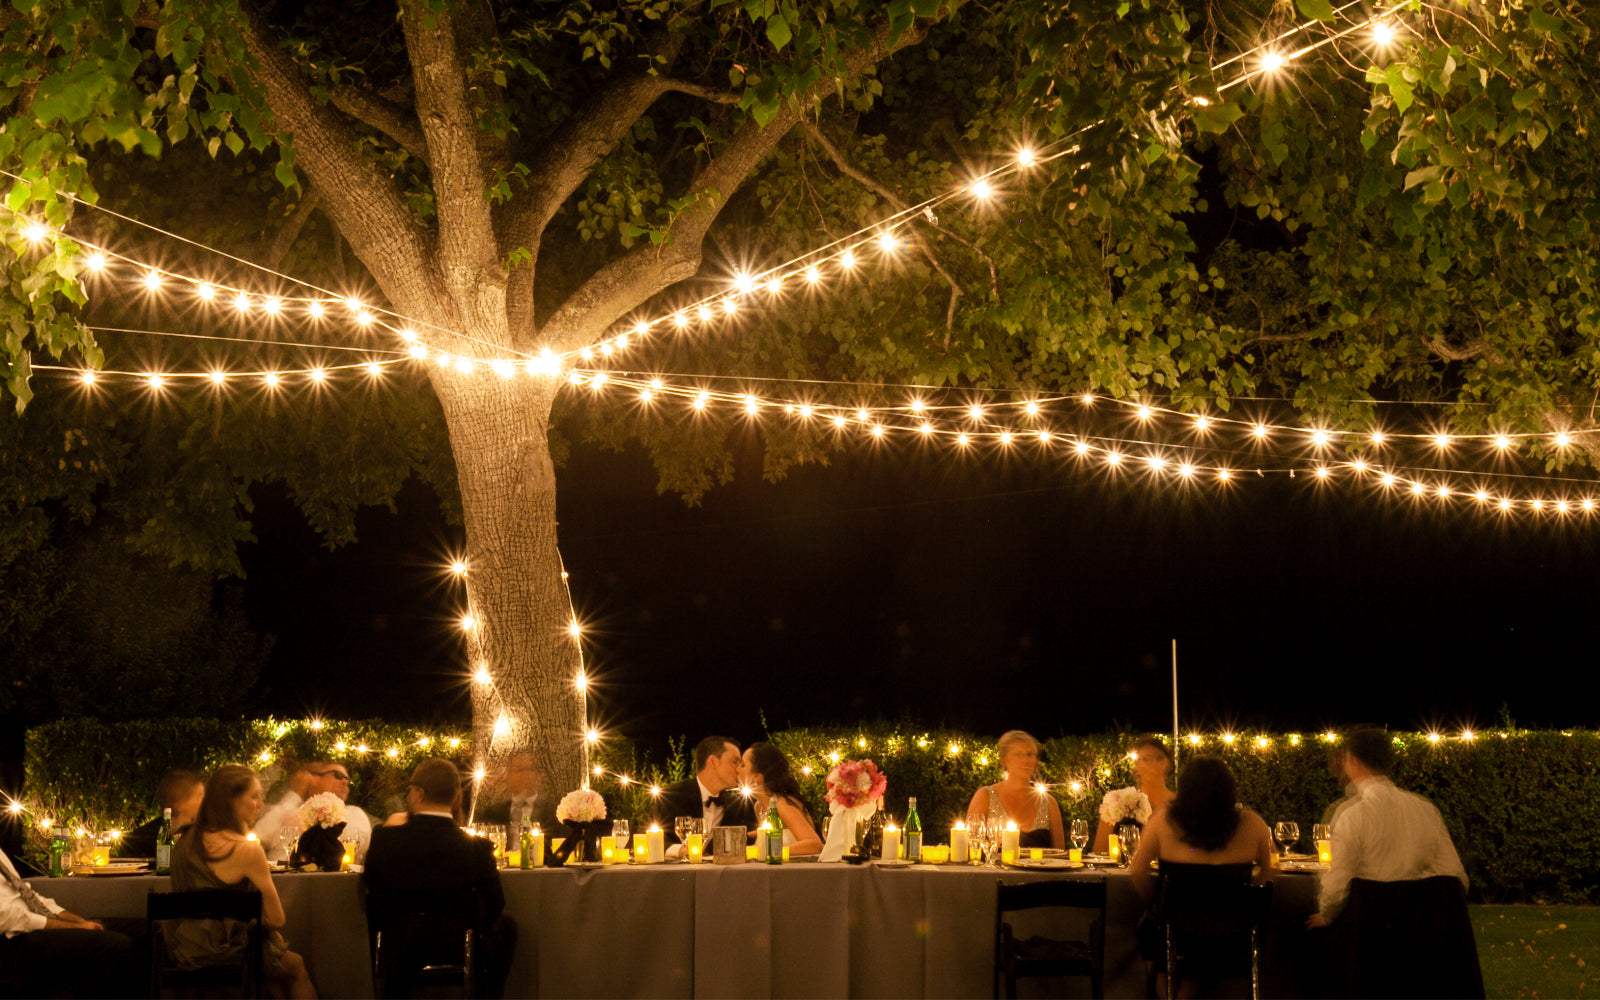 Outdoor Wedding Reception with String Lights Overhead